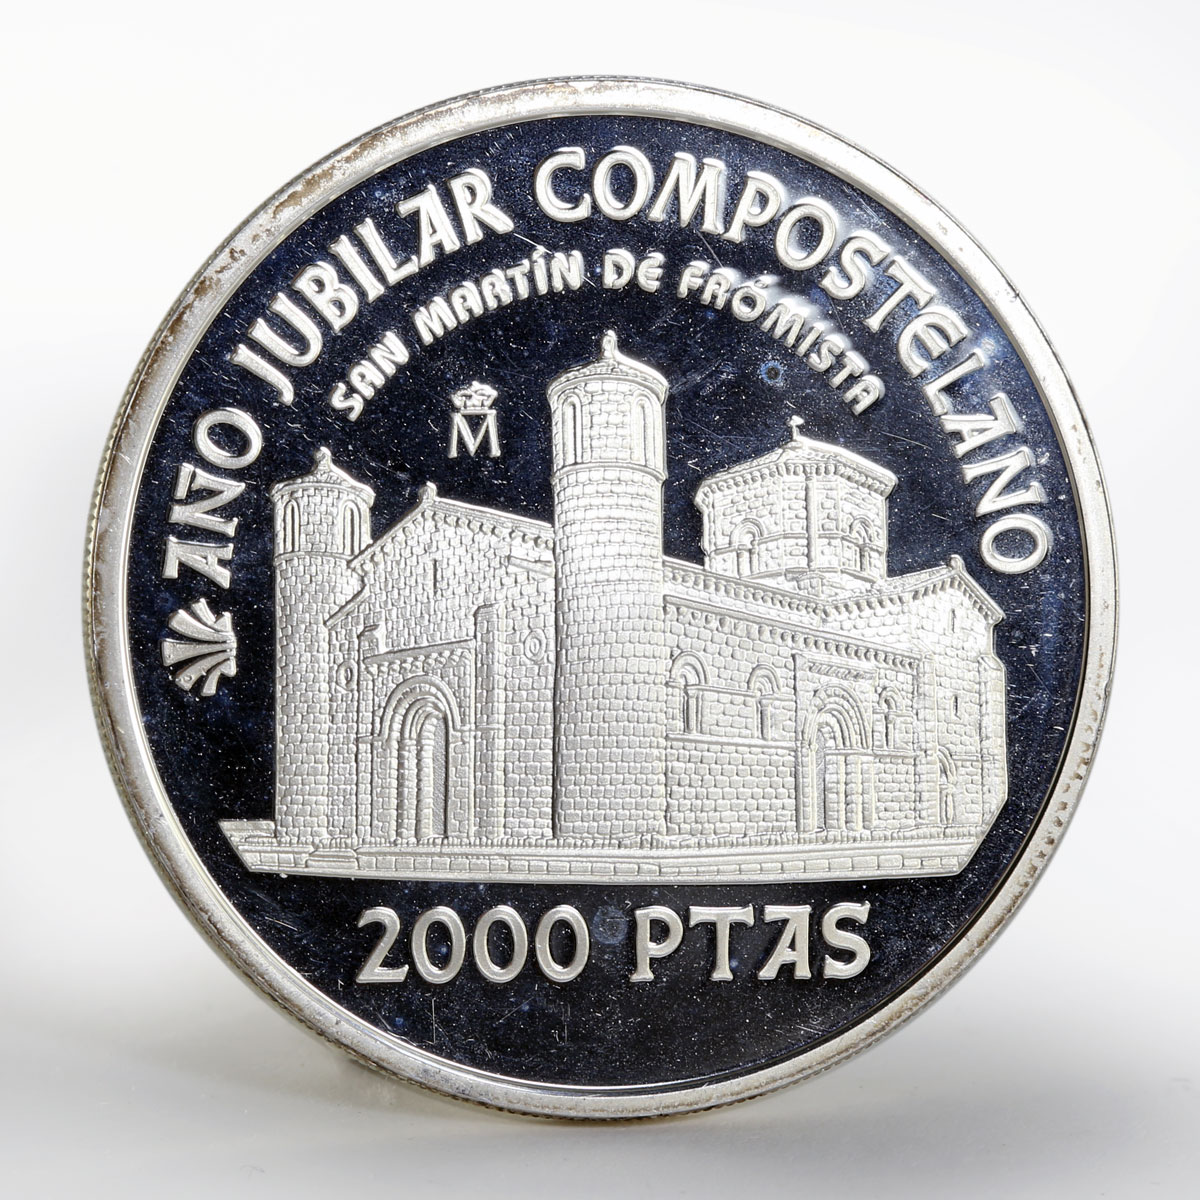 Spain 2000 pesetas Holy Year of St. James church silver coin 1999